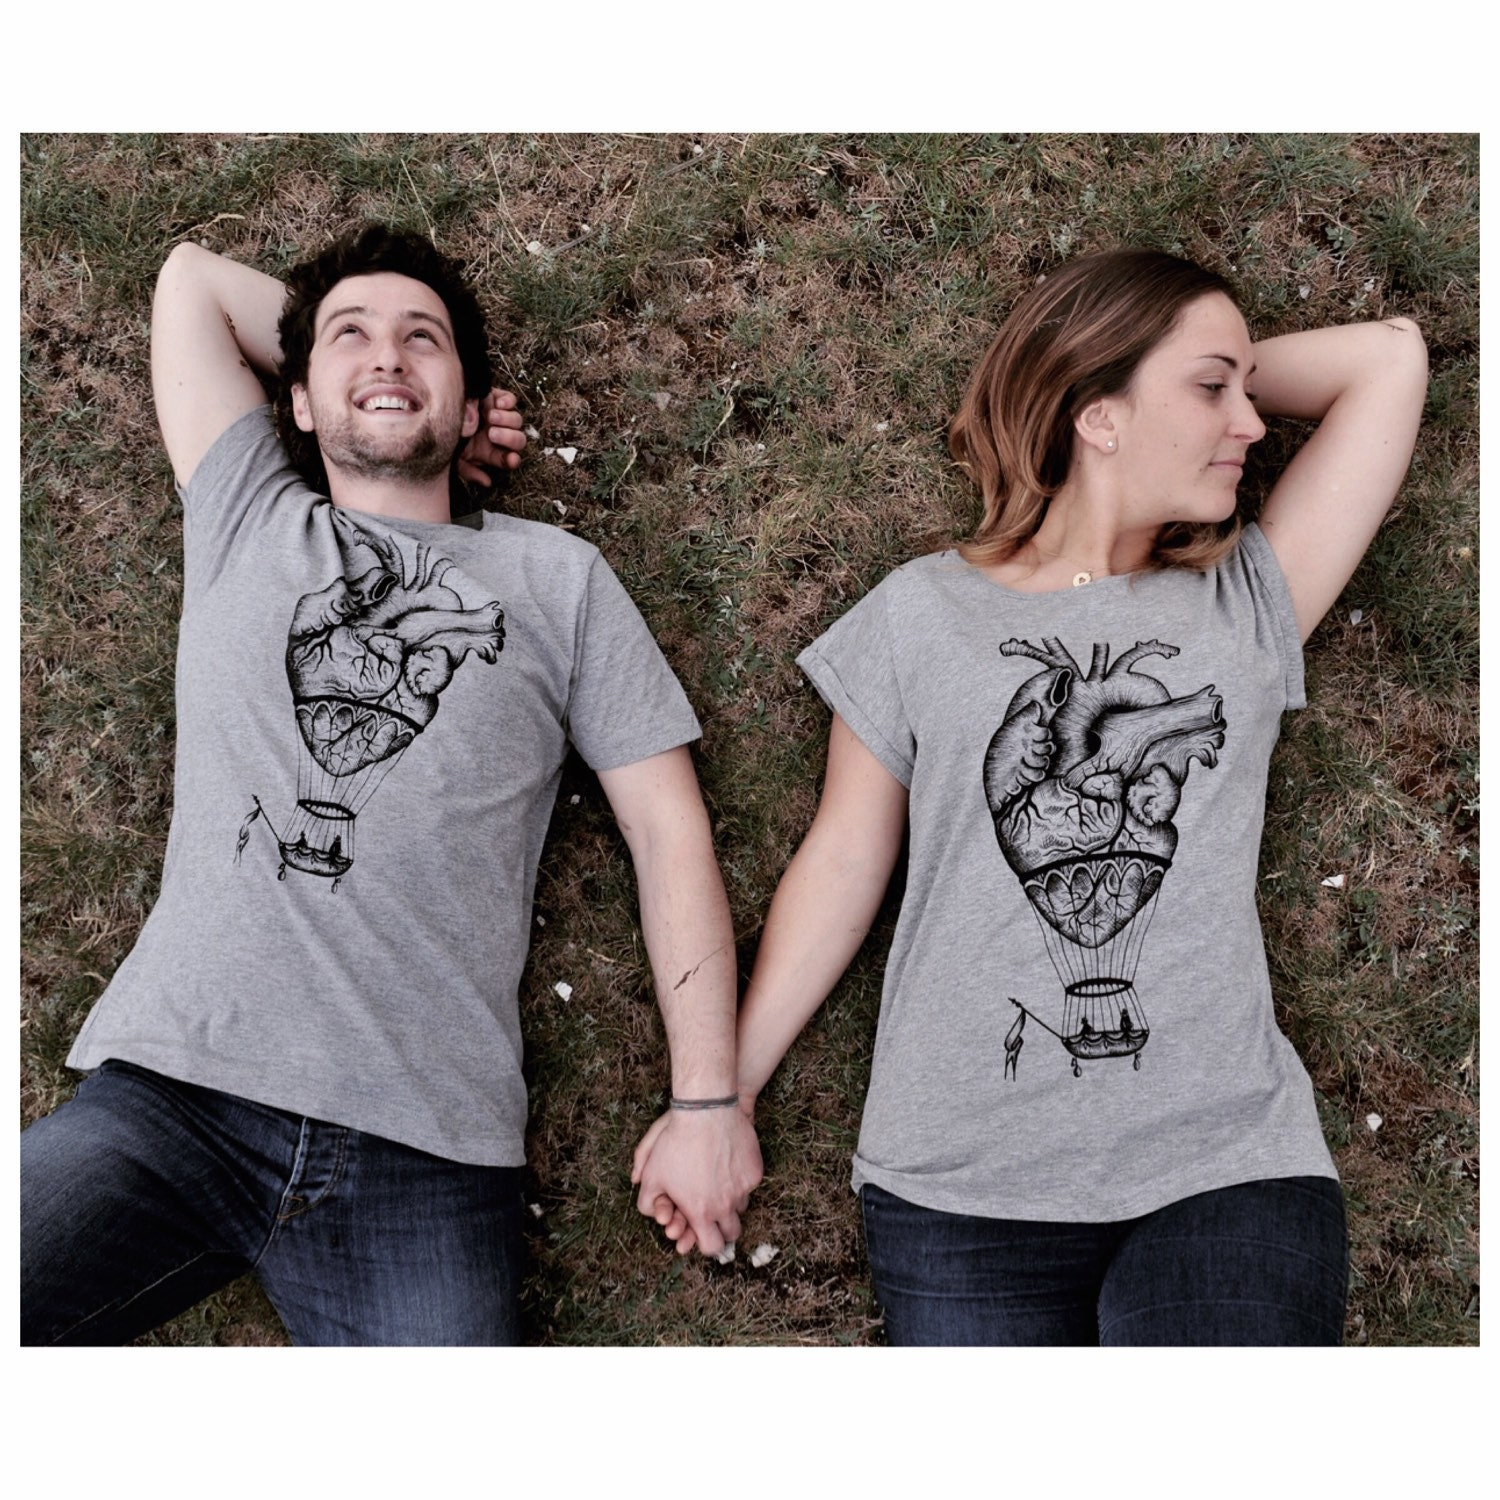 Shirt design for couples -  Zoom